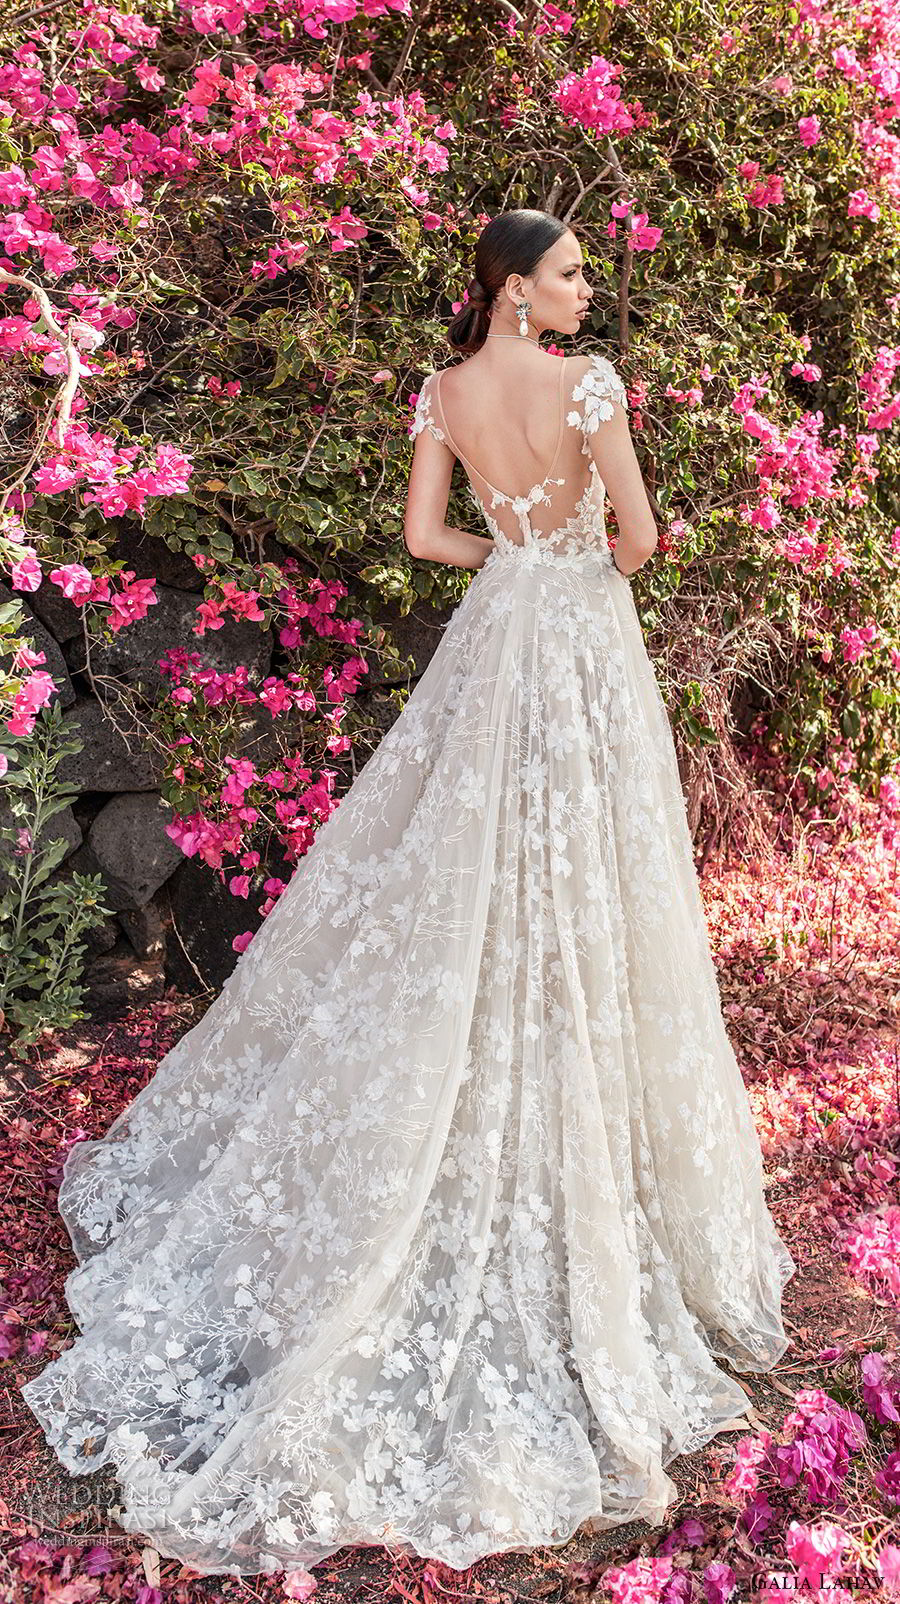 galia lahav couture fall 2018 bridal cap sleeves sweetheart neckline full embellishment elegant romantic a line wedding dress open back chapel train (1) bv